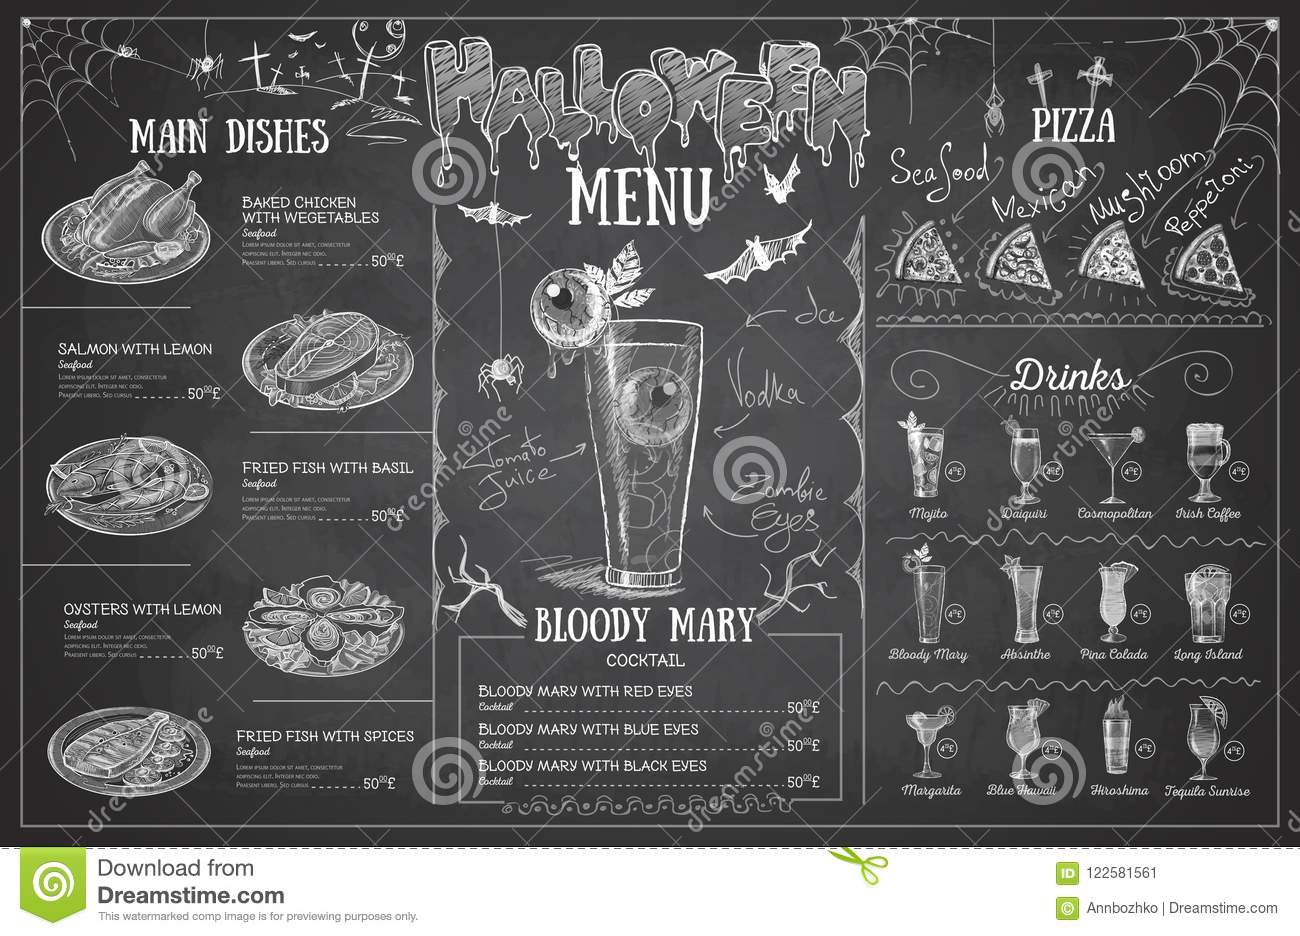 Vintage Chalk Drawing Halloween Menu Design Restaurant Menu Stock Vector Illustration Of Chalk Corporate 122581561